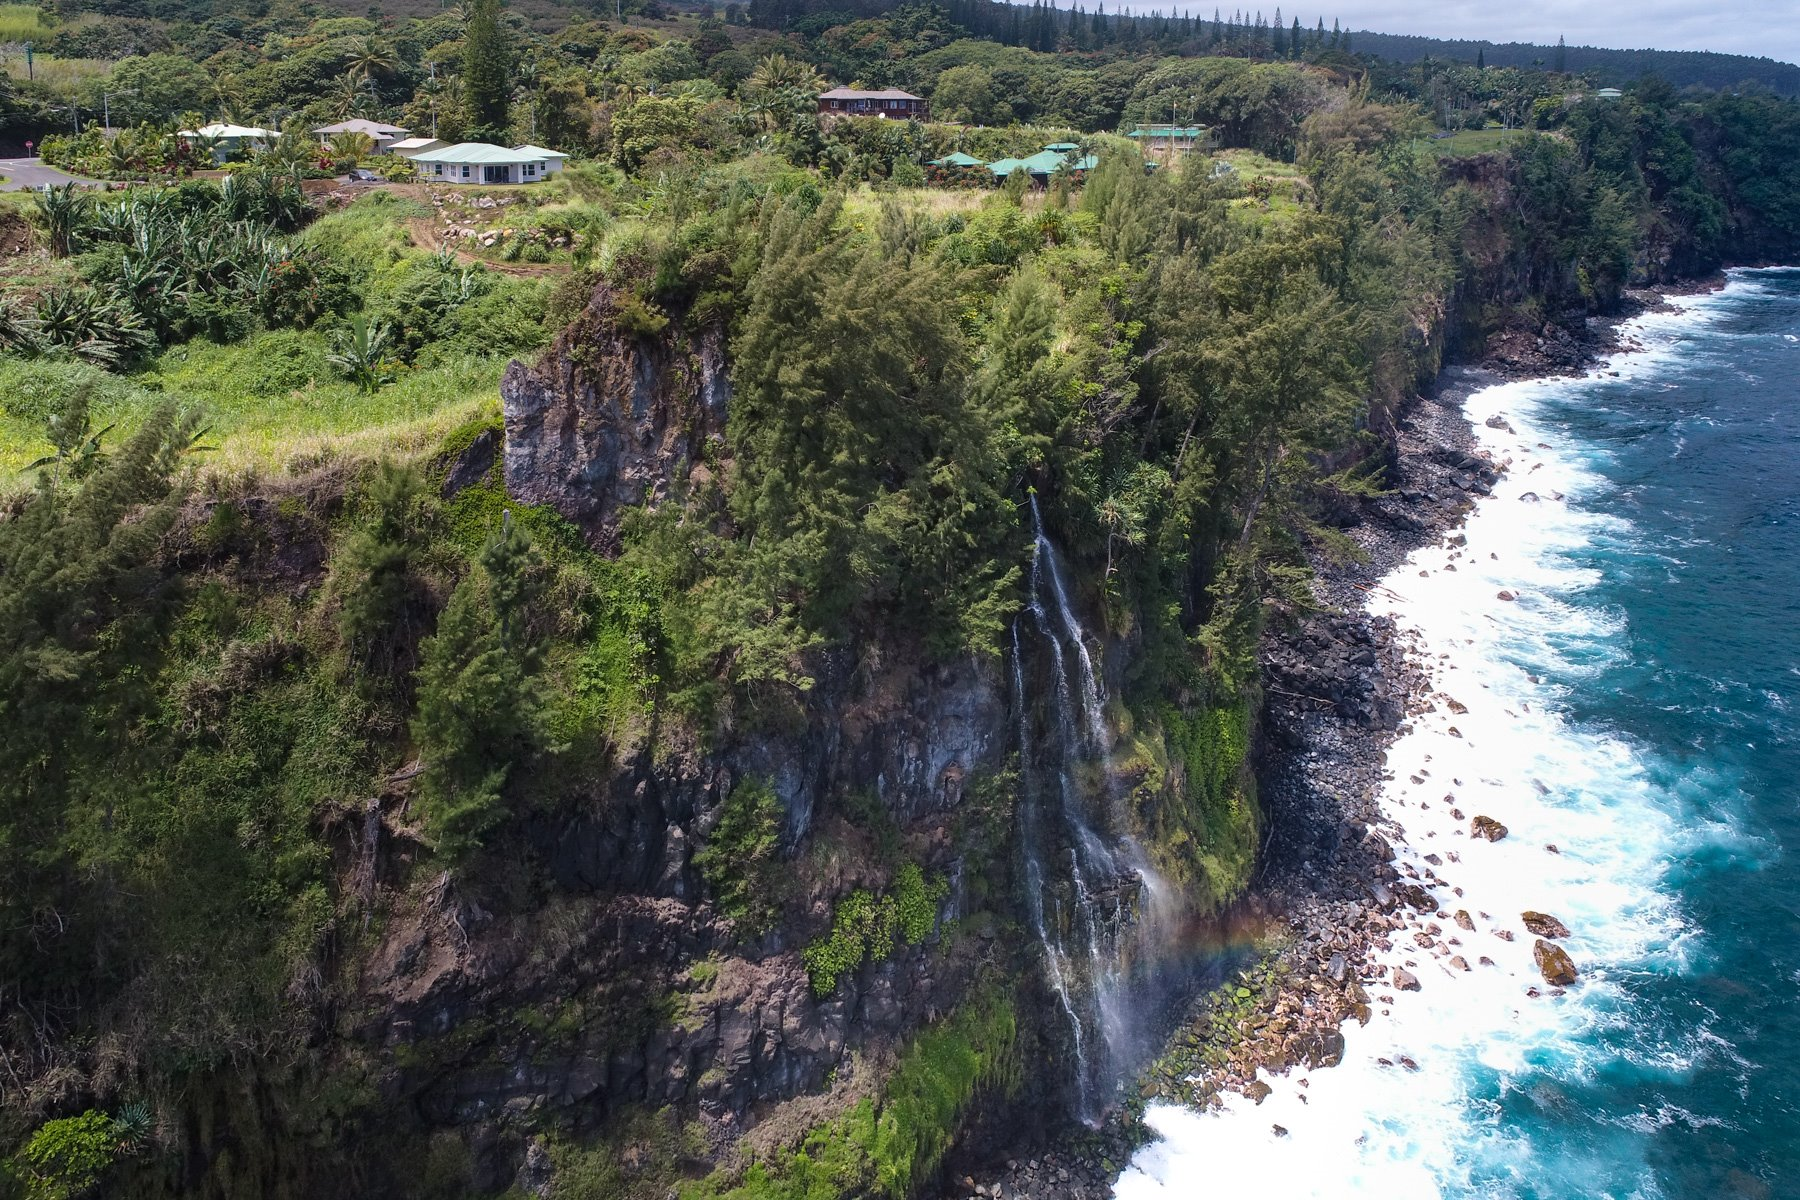 The stream turns into a waterfall when exiting into the ocean. Check out that rainbow at the bottom. Ninole is a majestic place!